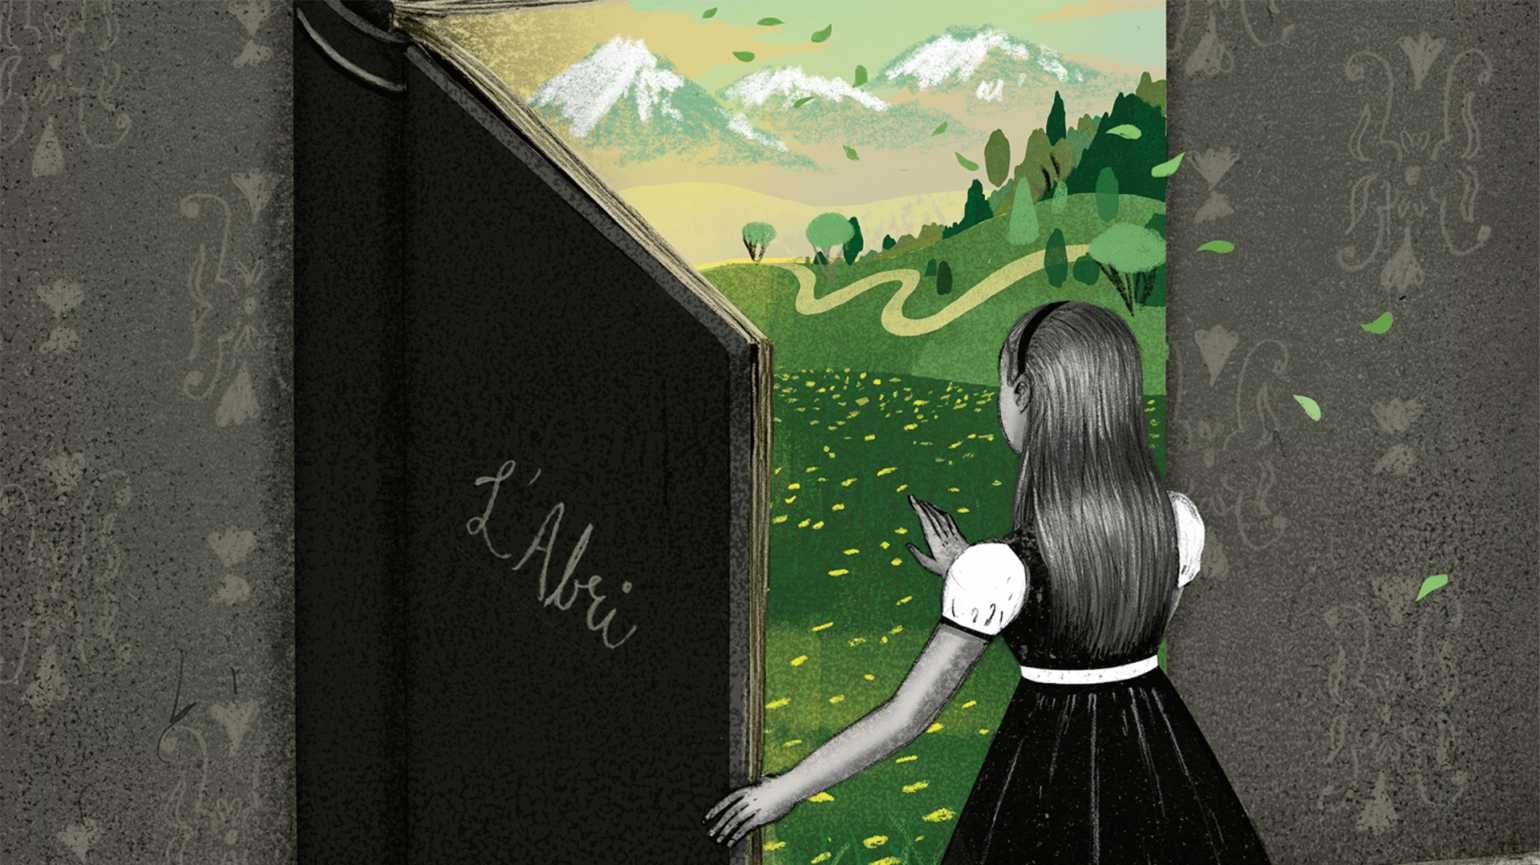 Bryon Eggenschwiler's illustration of a young girl stepping into a book called L'Abri